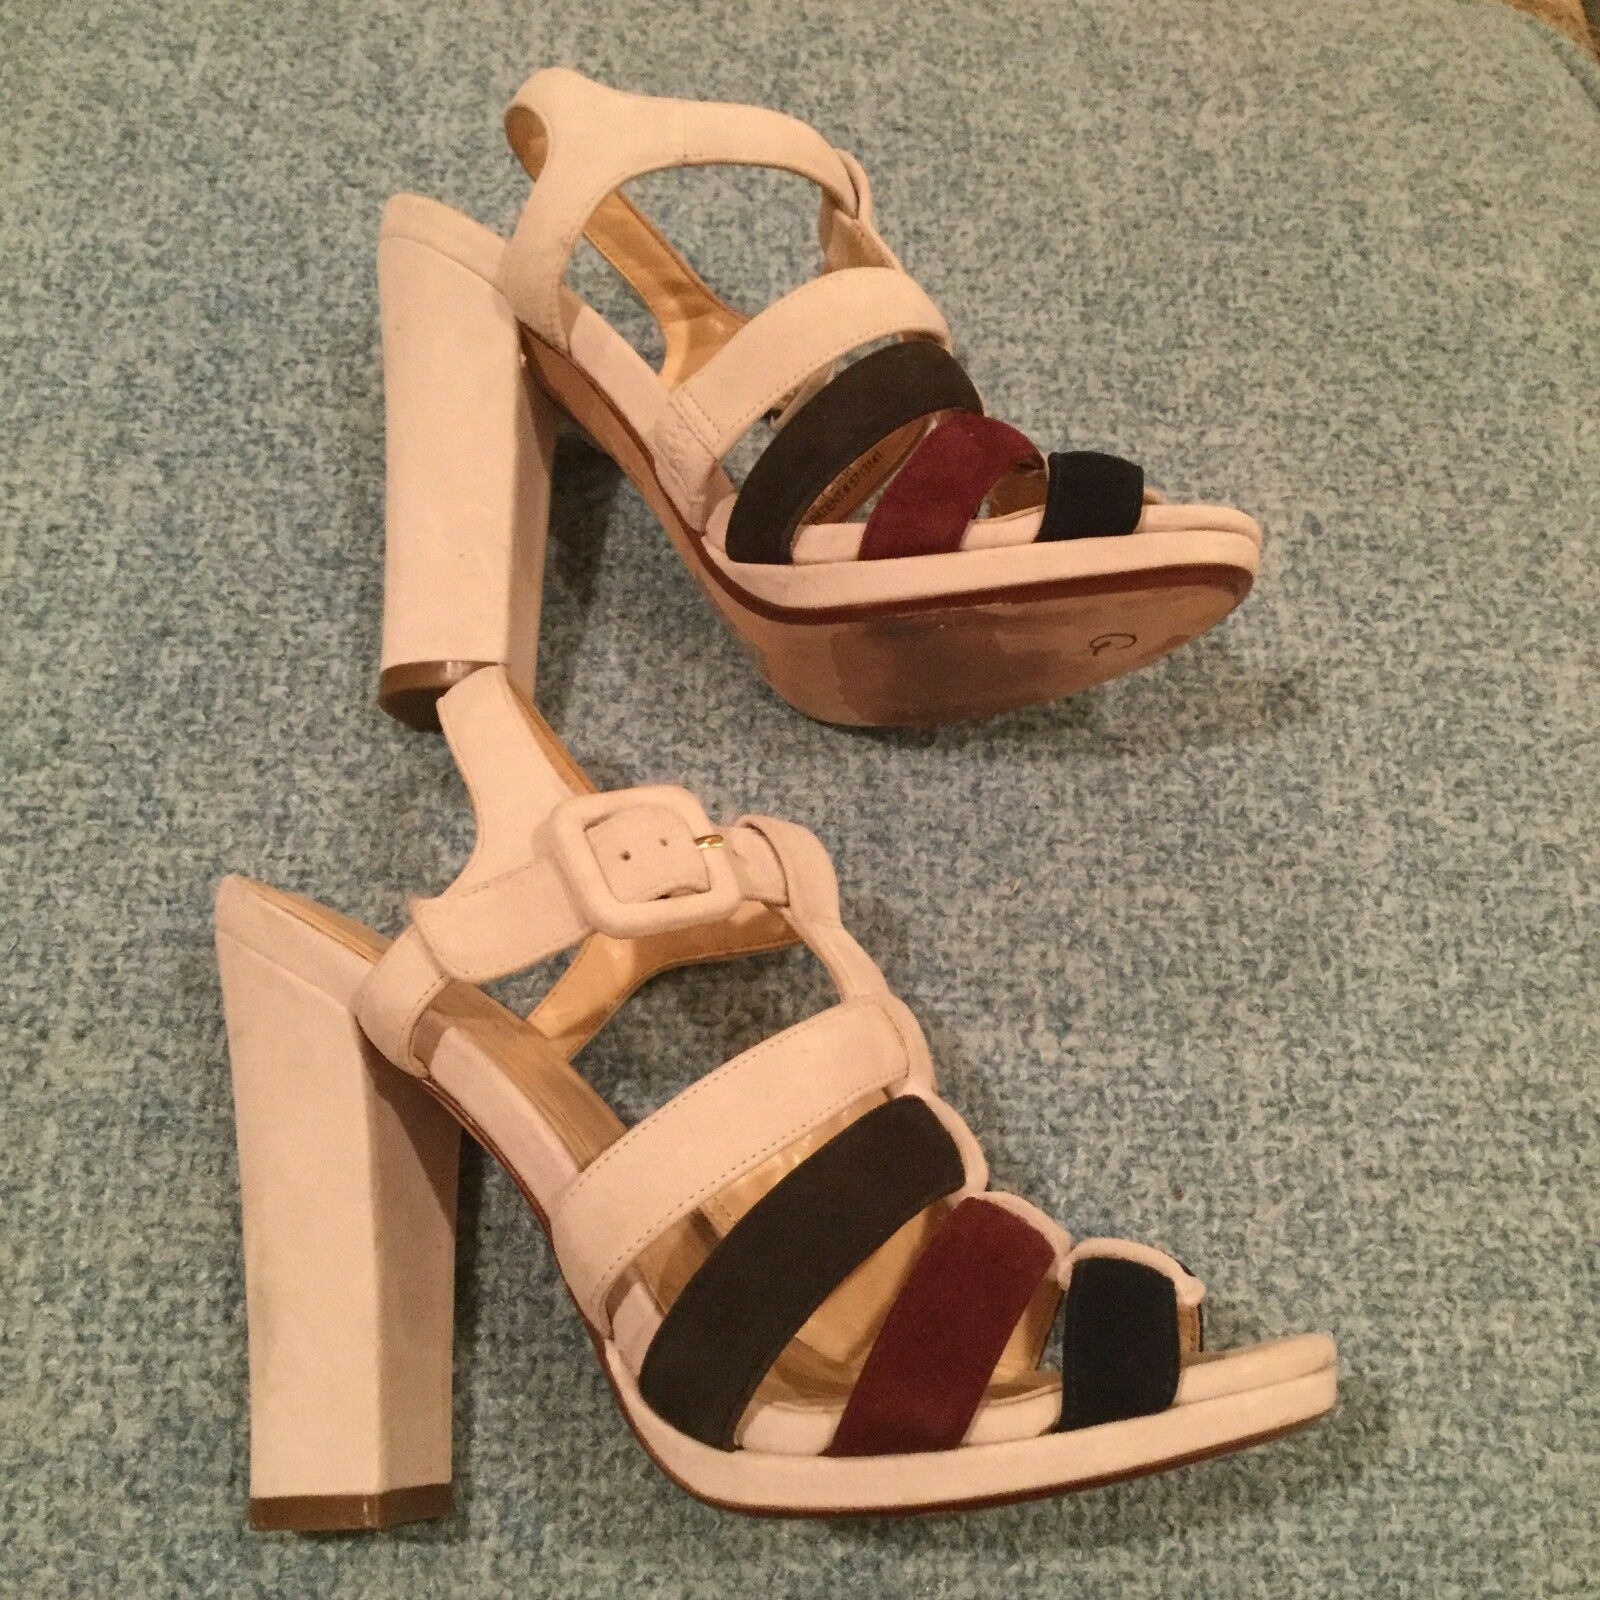 Cole Haan 6 Suede Strappy Platform Sandals High Block Heel White Navy Burgundy